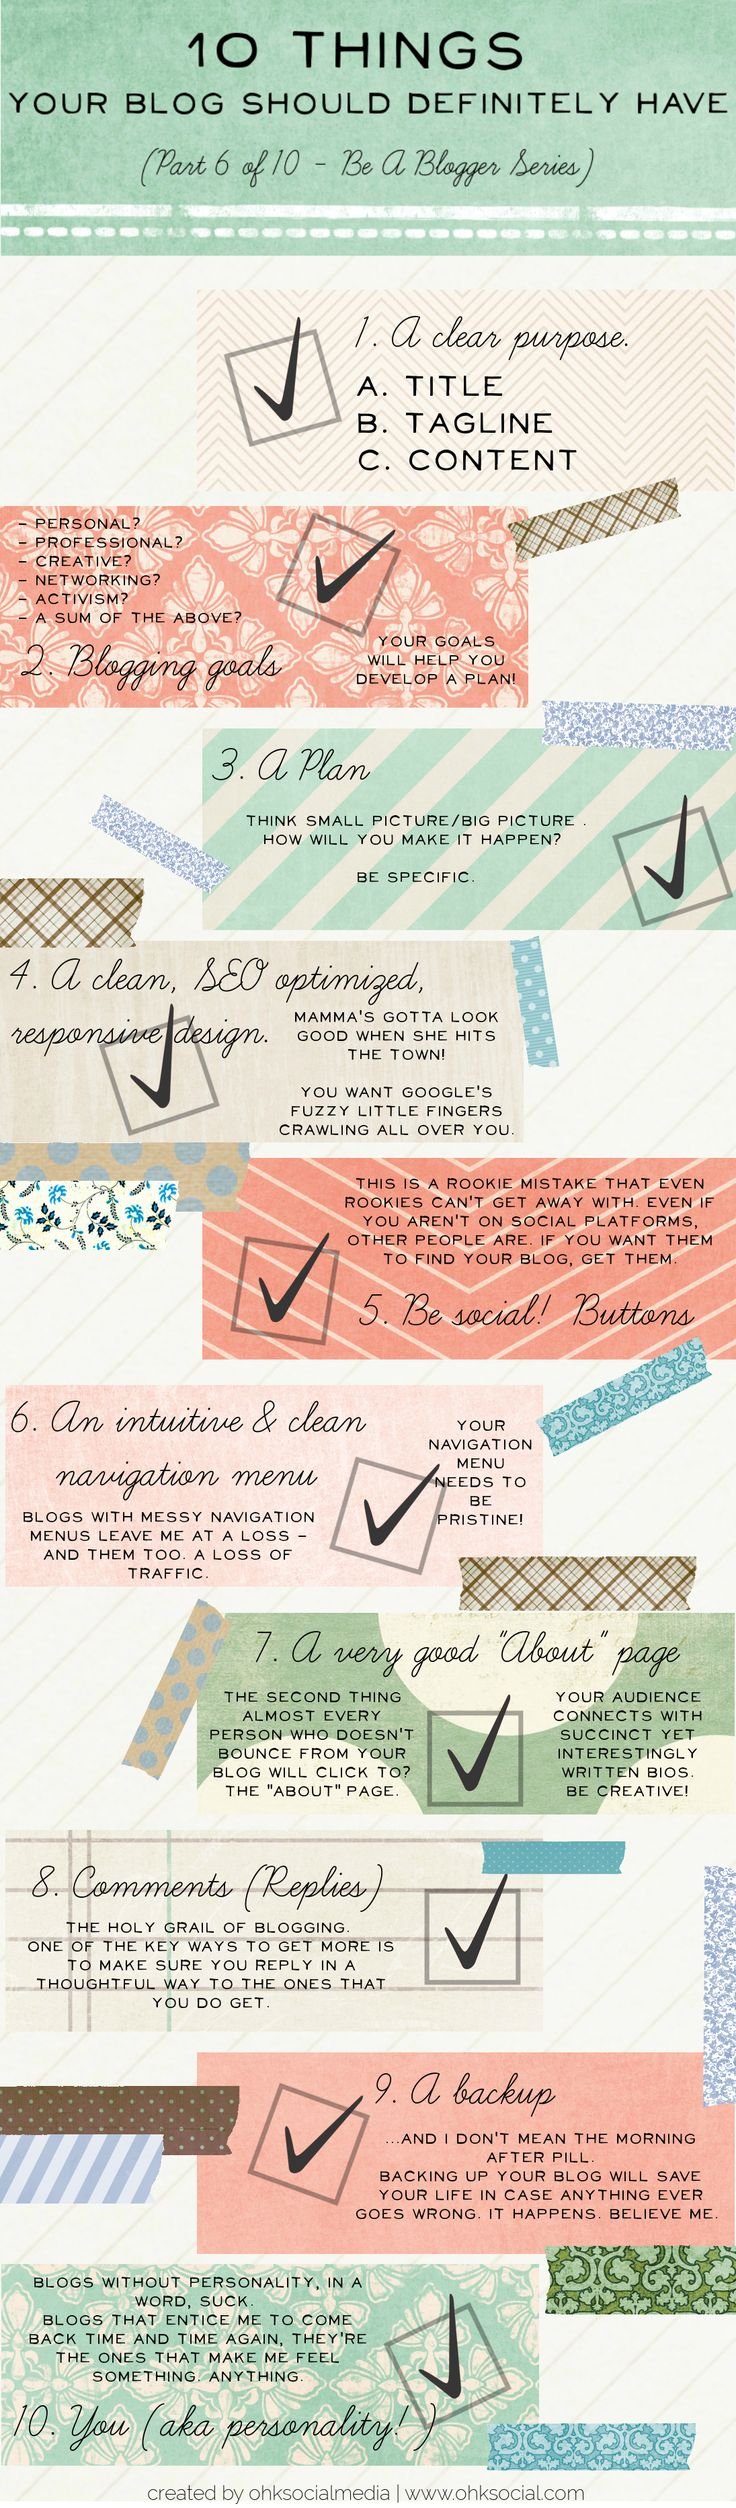 10 Things your blog should definitely have! how many of these do you have checked off?